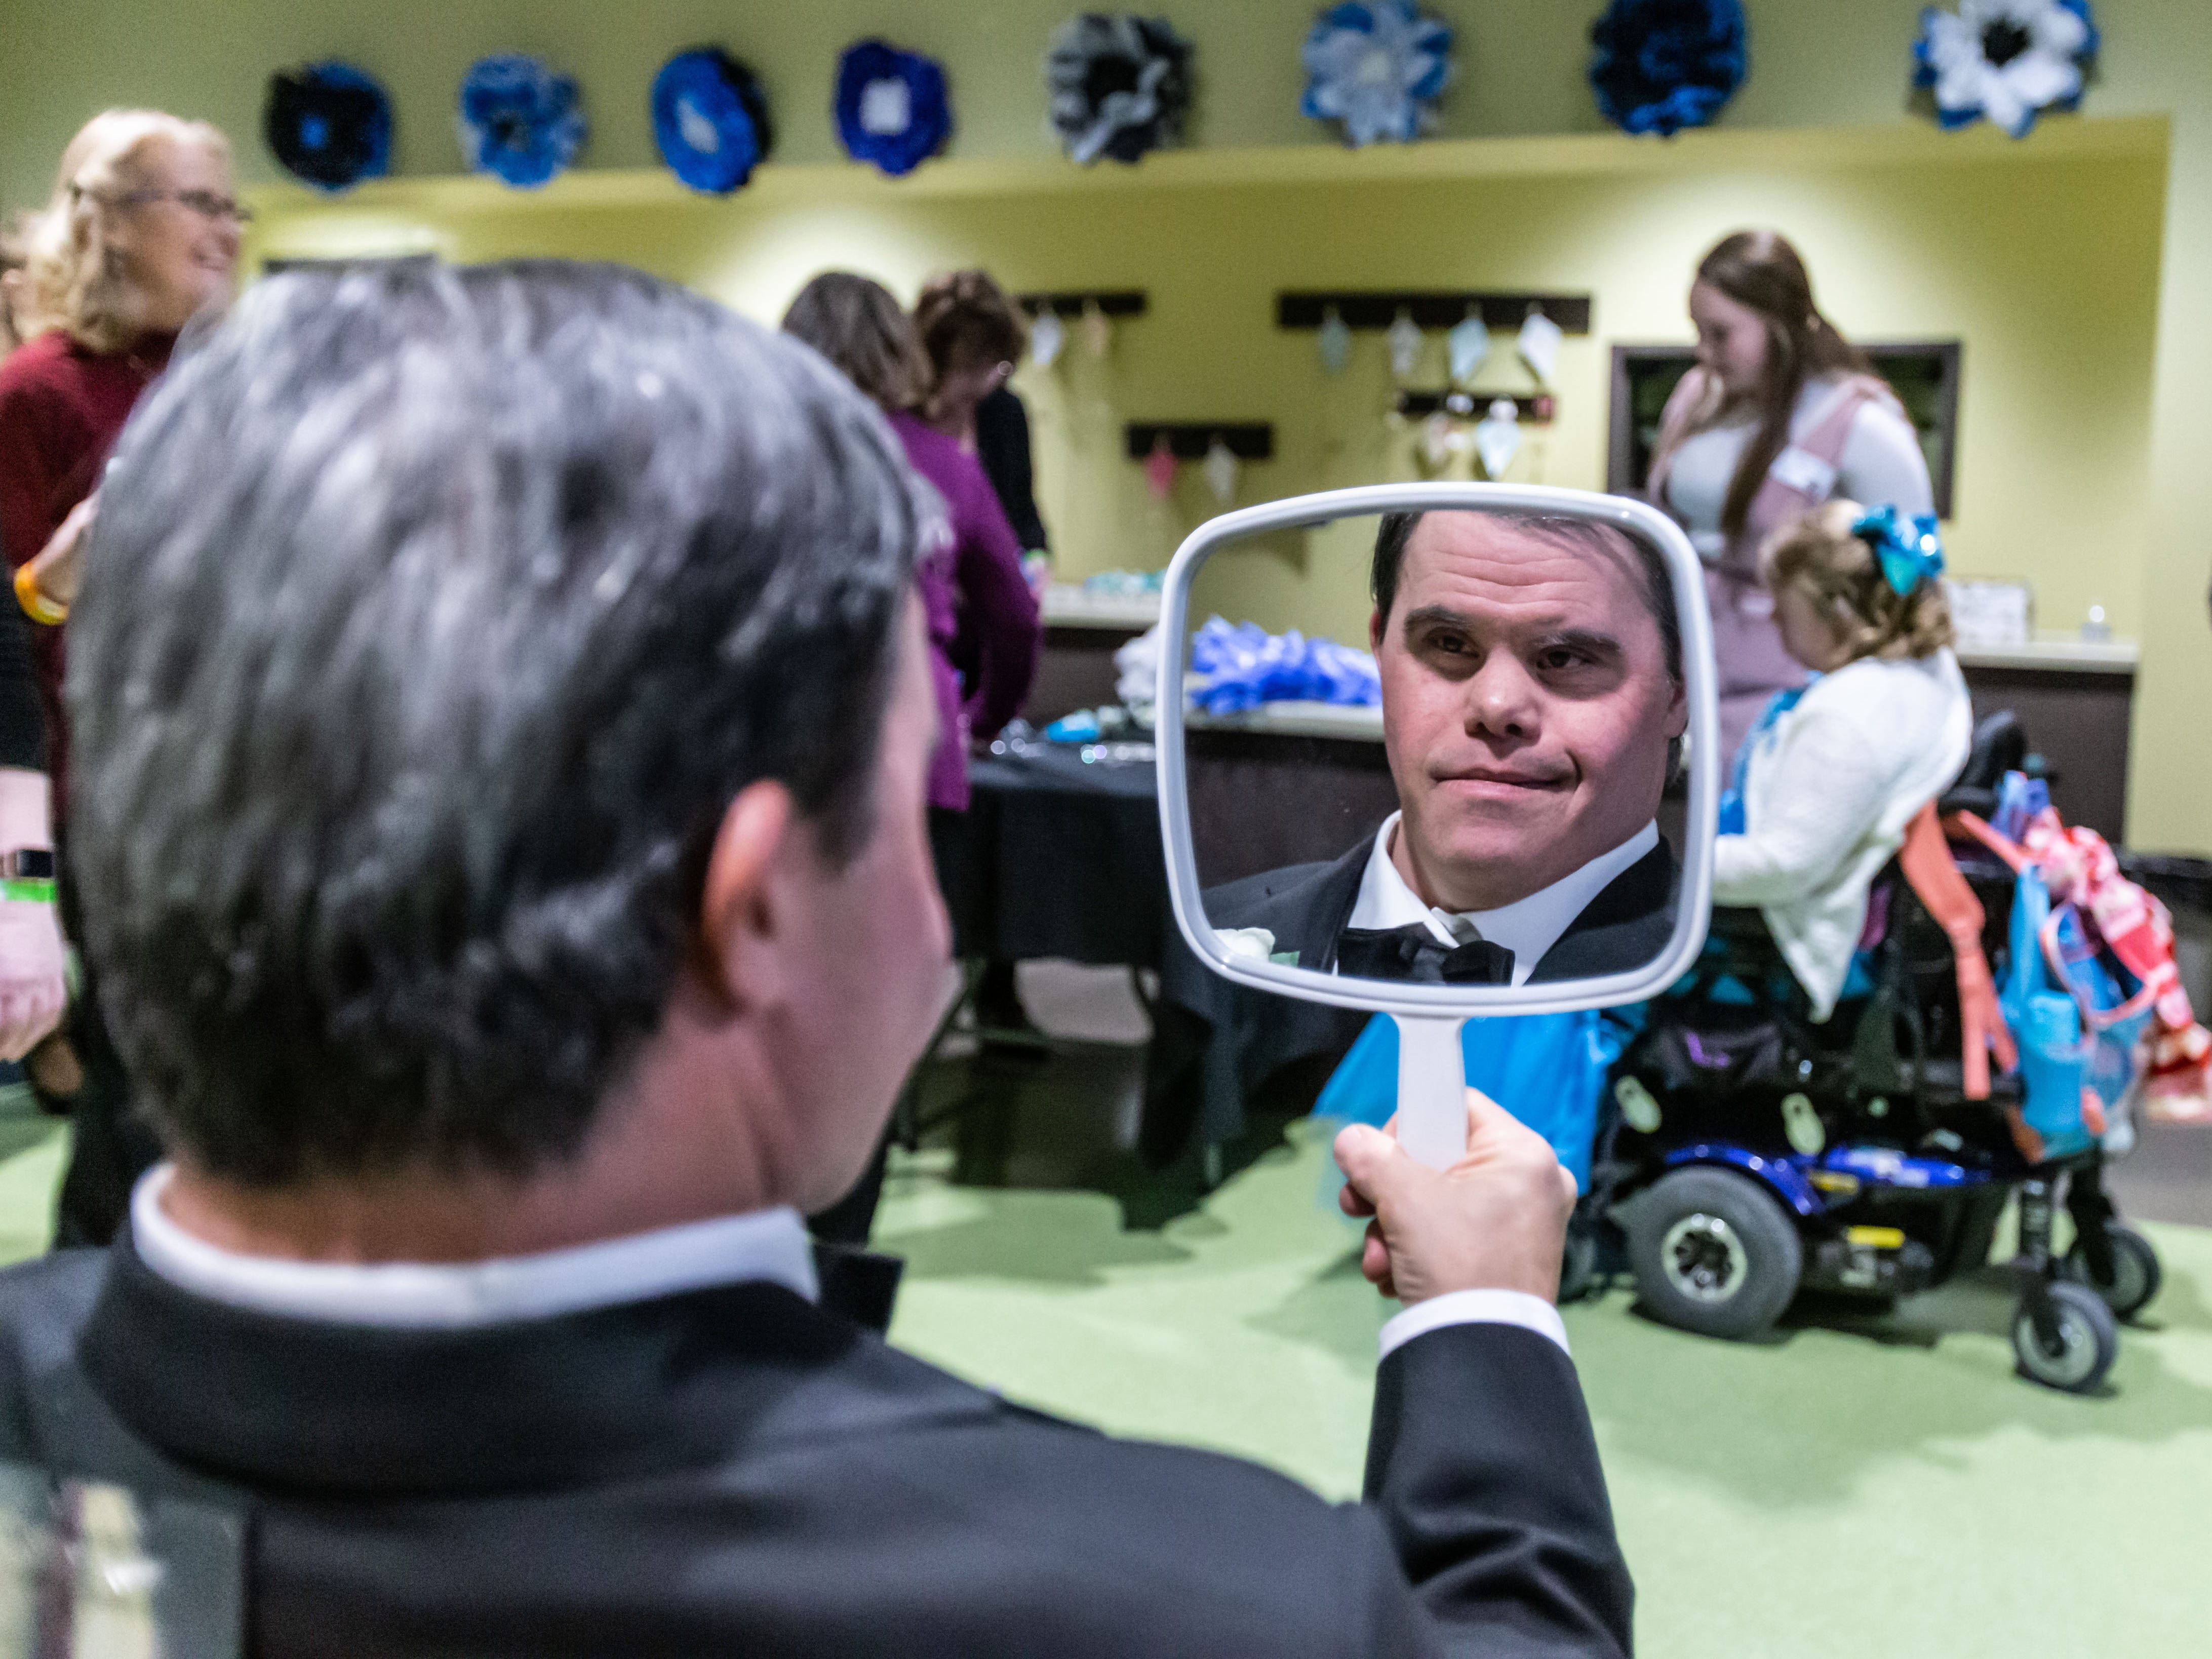 Michael G. checks his appearance after receiving the royal treatment during the Night to Shine Prom hosted by Brooklife Church in Mukwonago on Friday, Feb. 8, 2019. Every guest of Night to Shine receives the royal treatment, including hair and makeup, limousine rides, corsages and boutonnieres, a catered dinner, karaoke and dancing, all leading up to the moment when each guest is crowned king or queen of the prom.